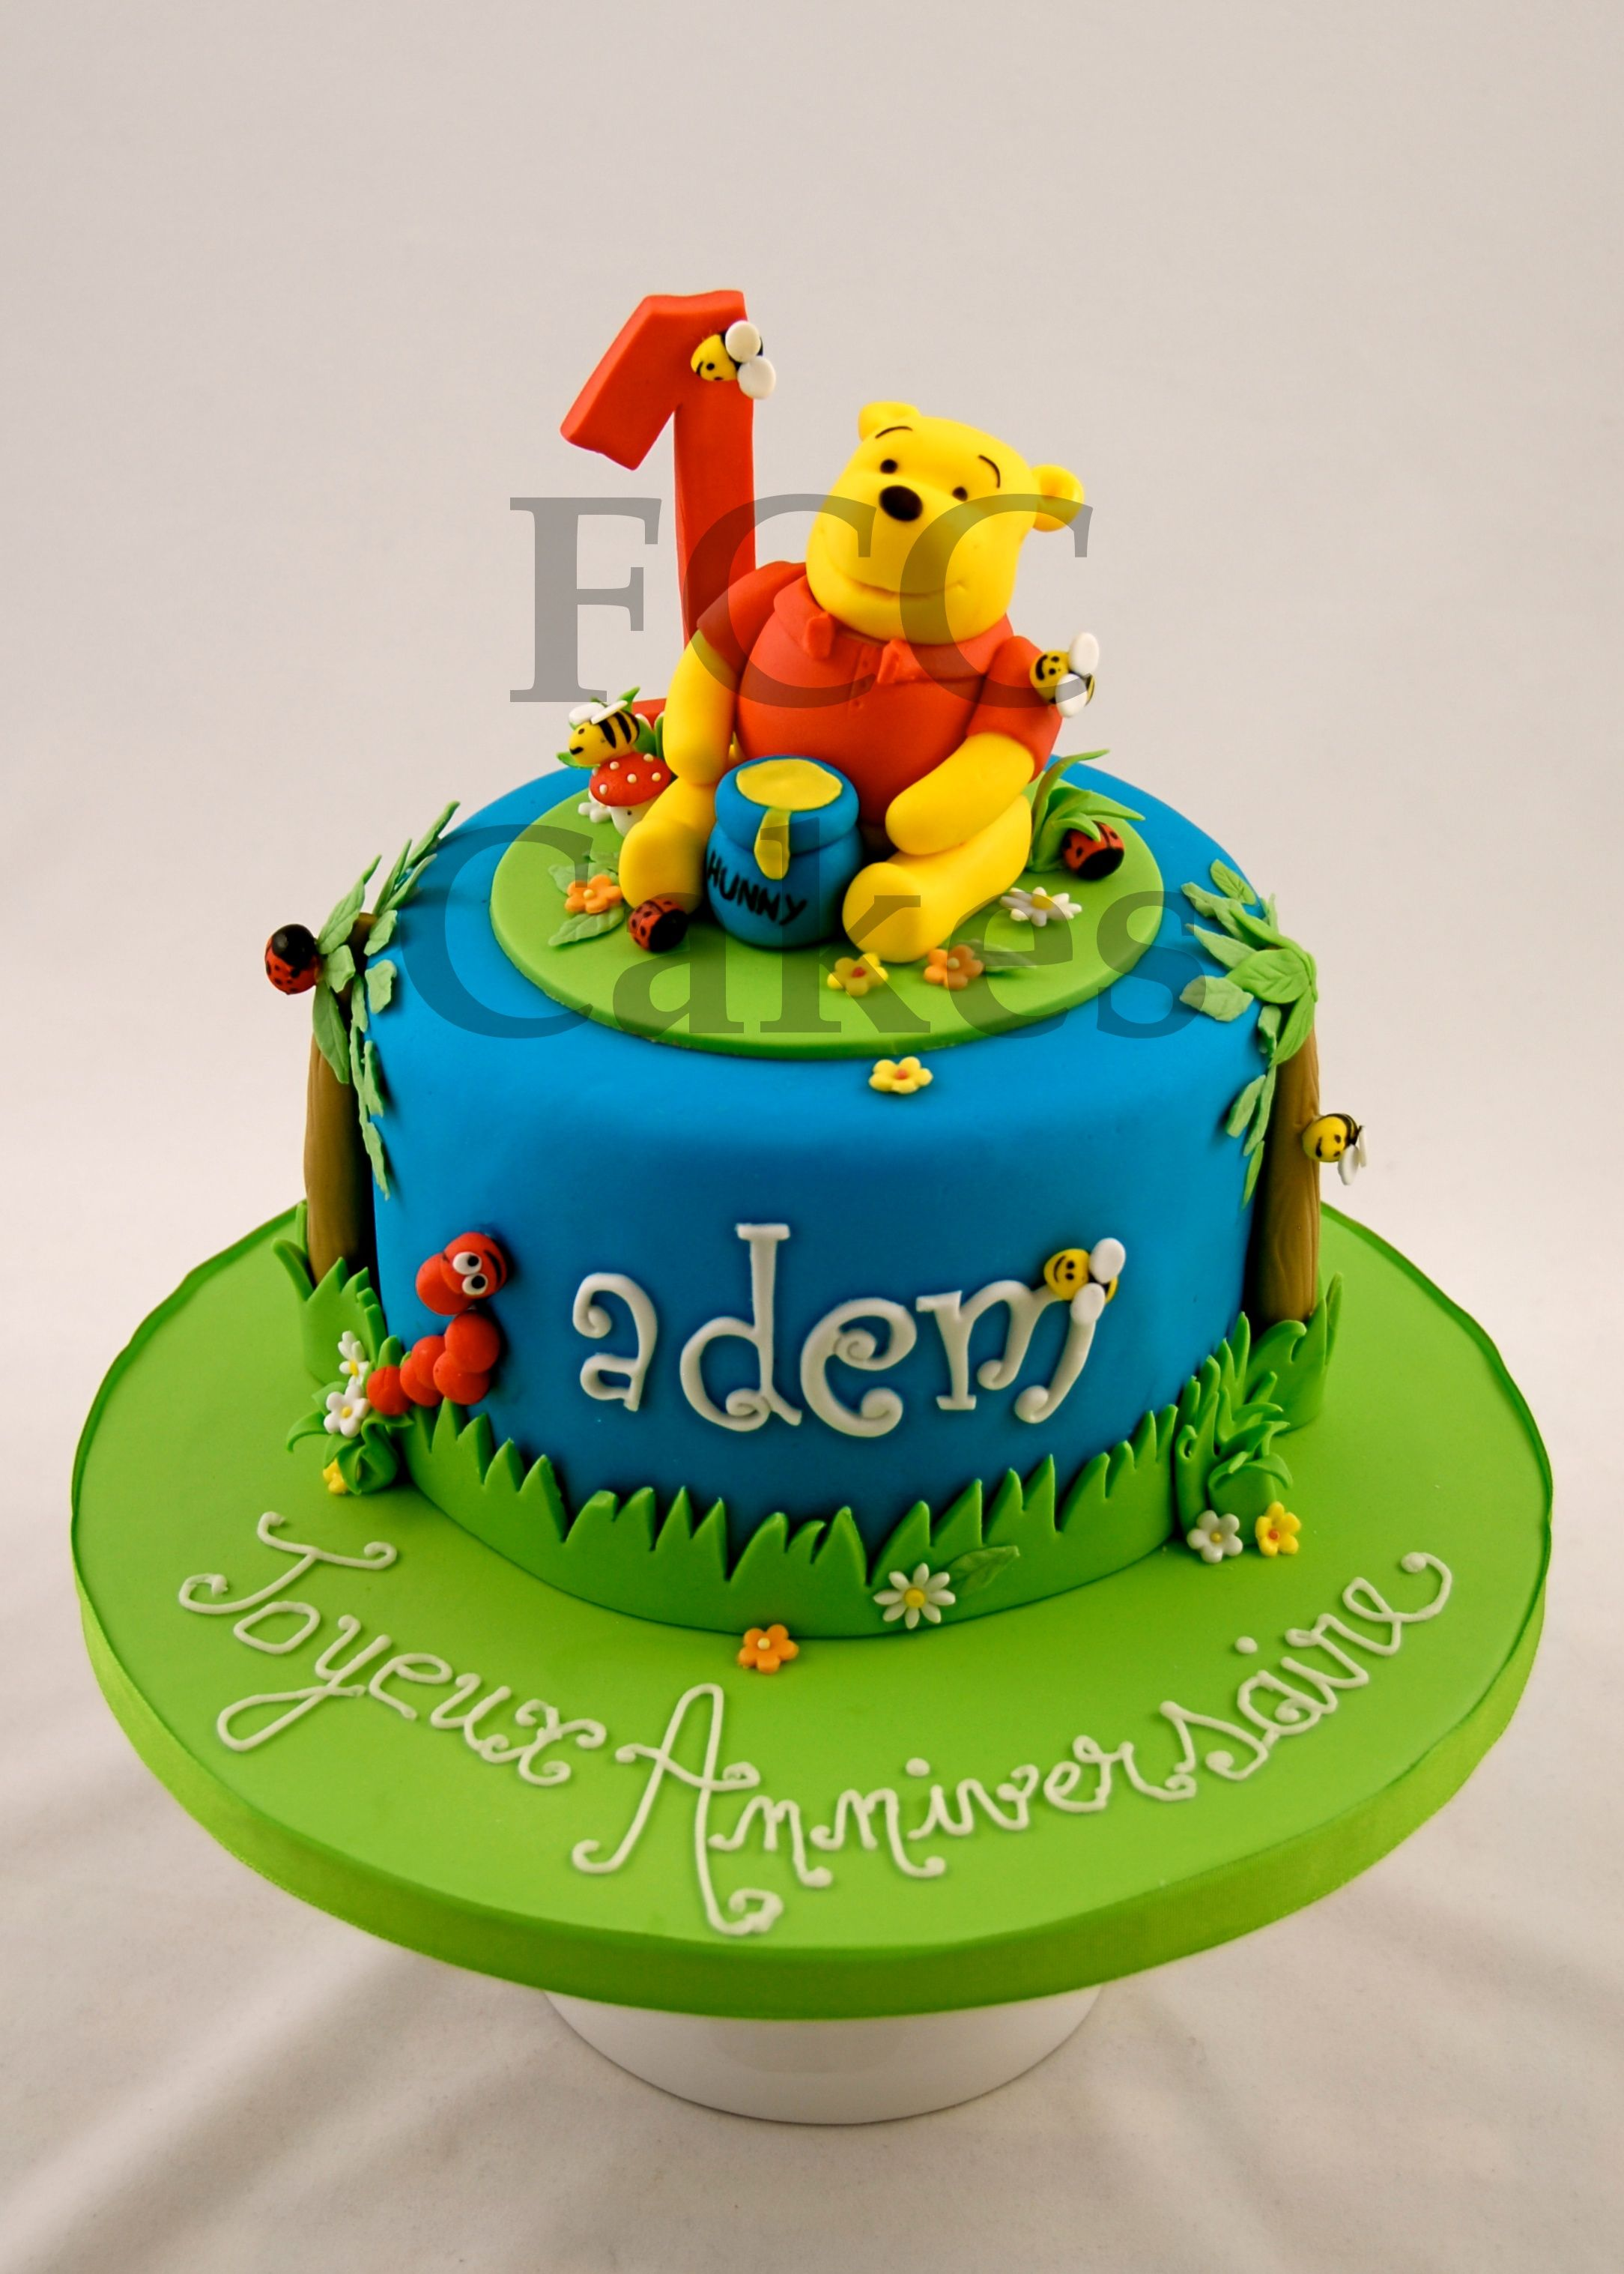 gateau anniversaire b b 1 an winnie gosupsneek. Black Bedroom Furniture Sets. Home Design Ideas